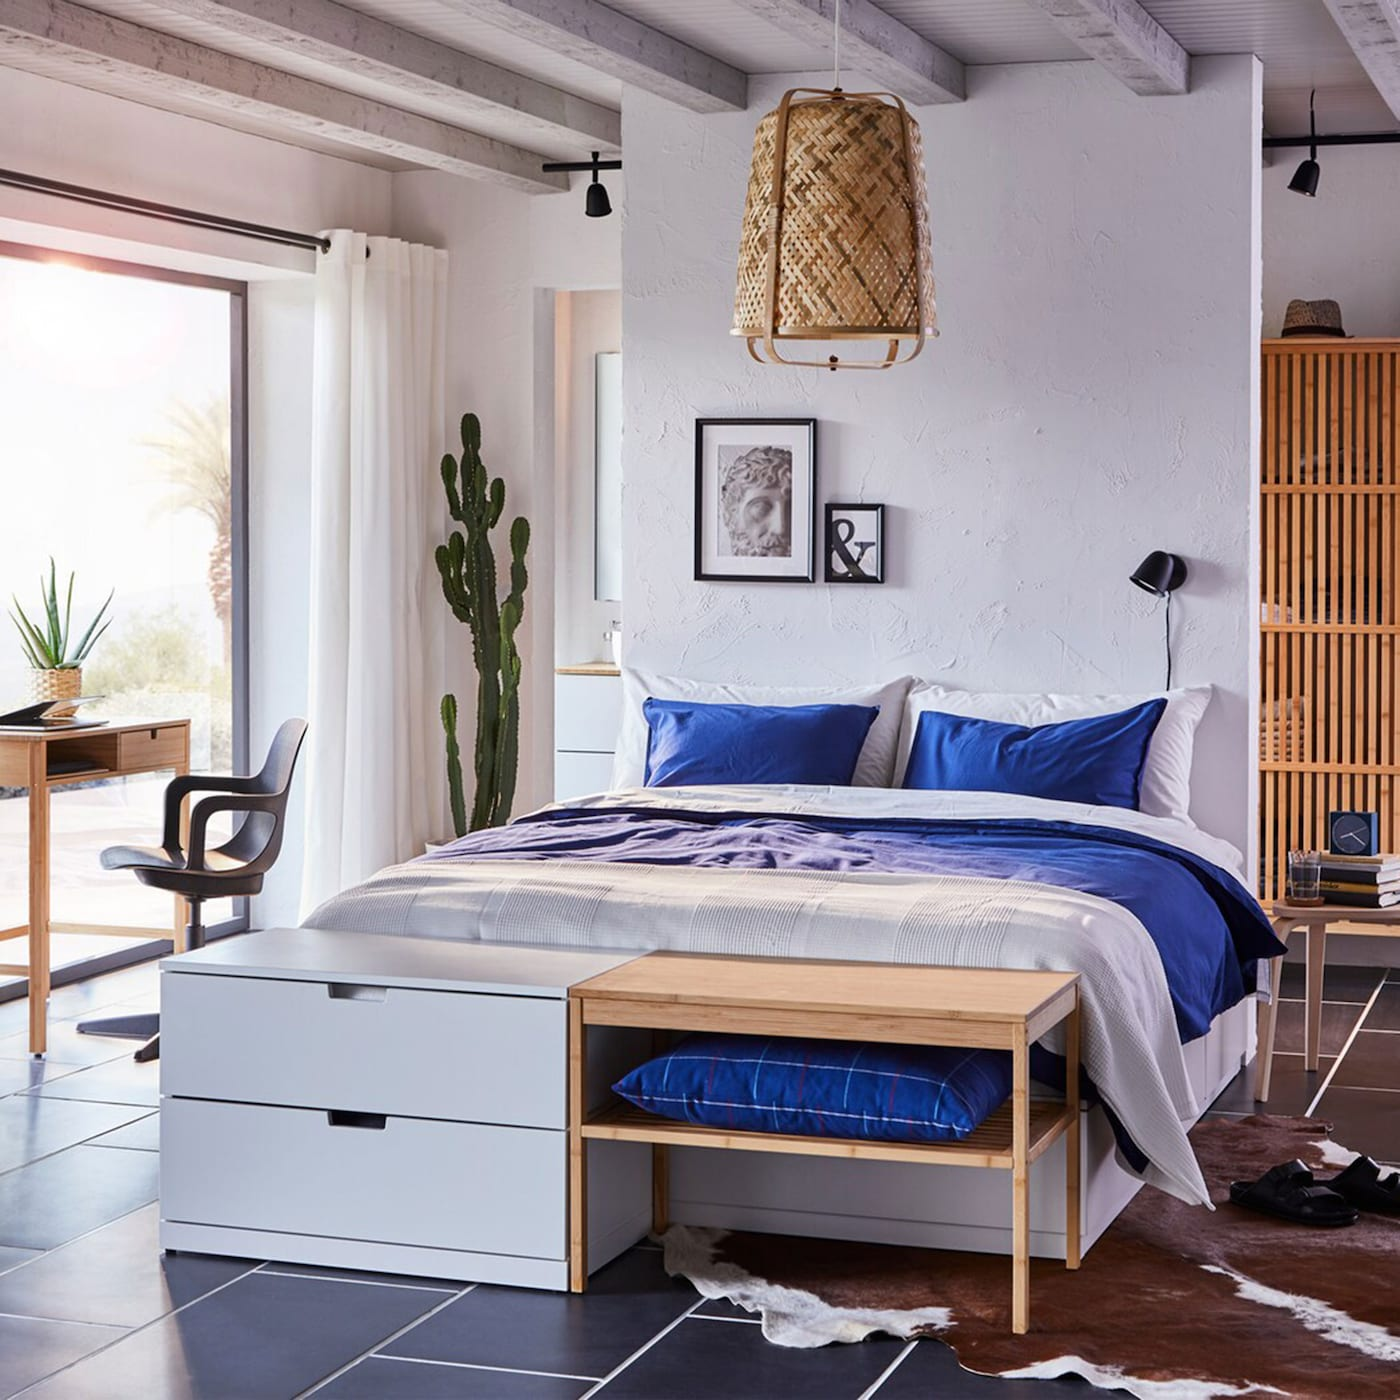 A bedroom with beautiful bamboo storage - IKEA